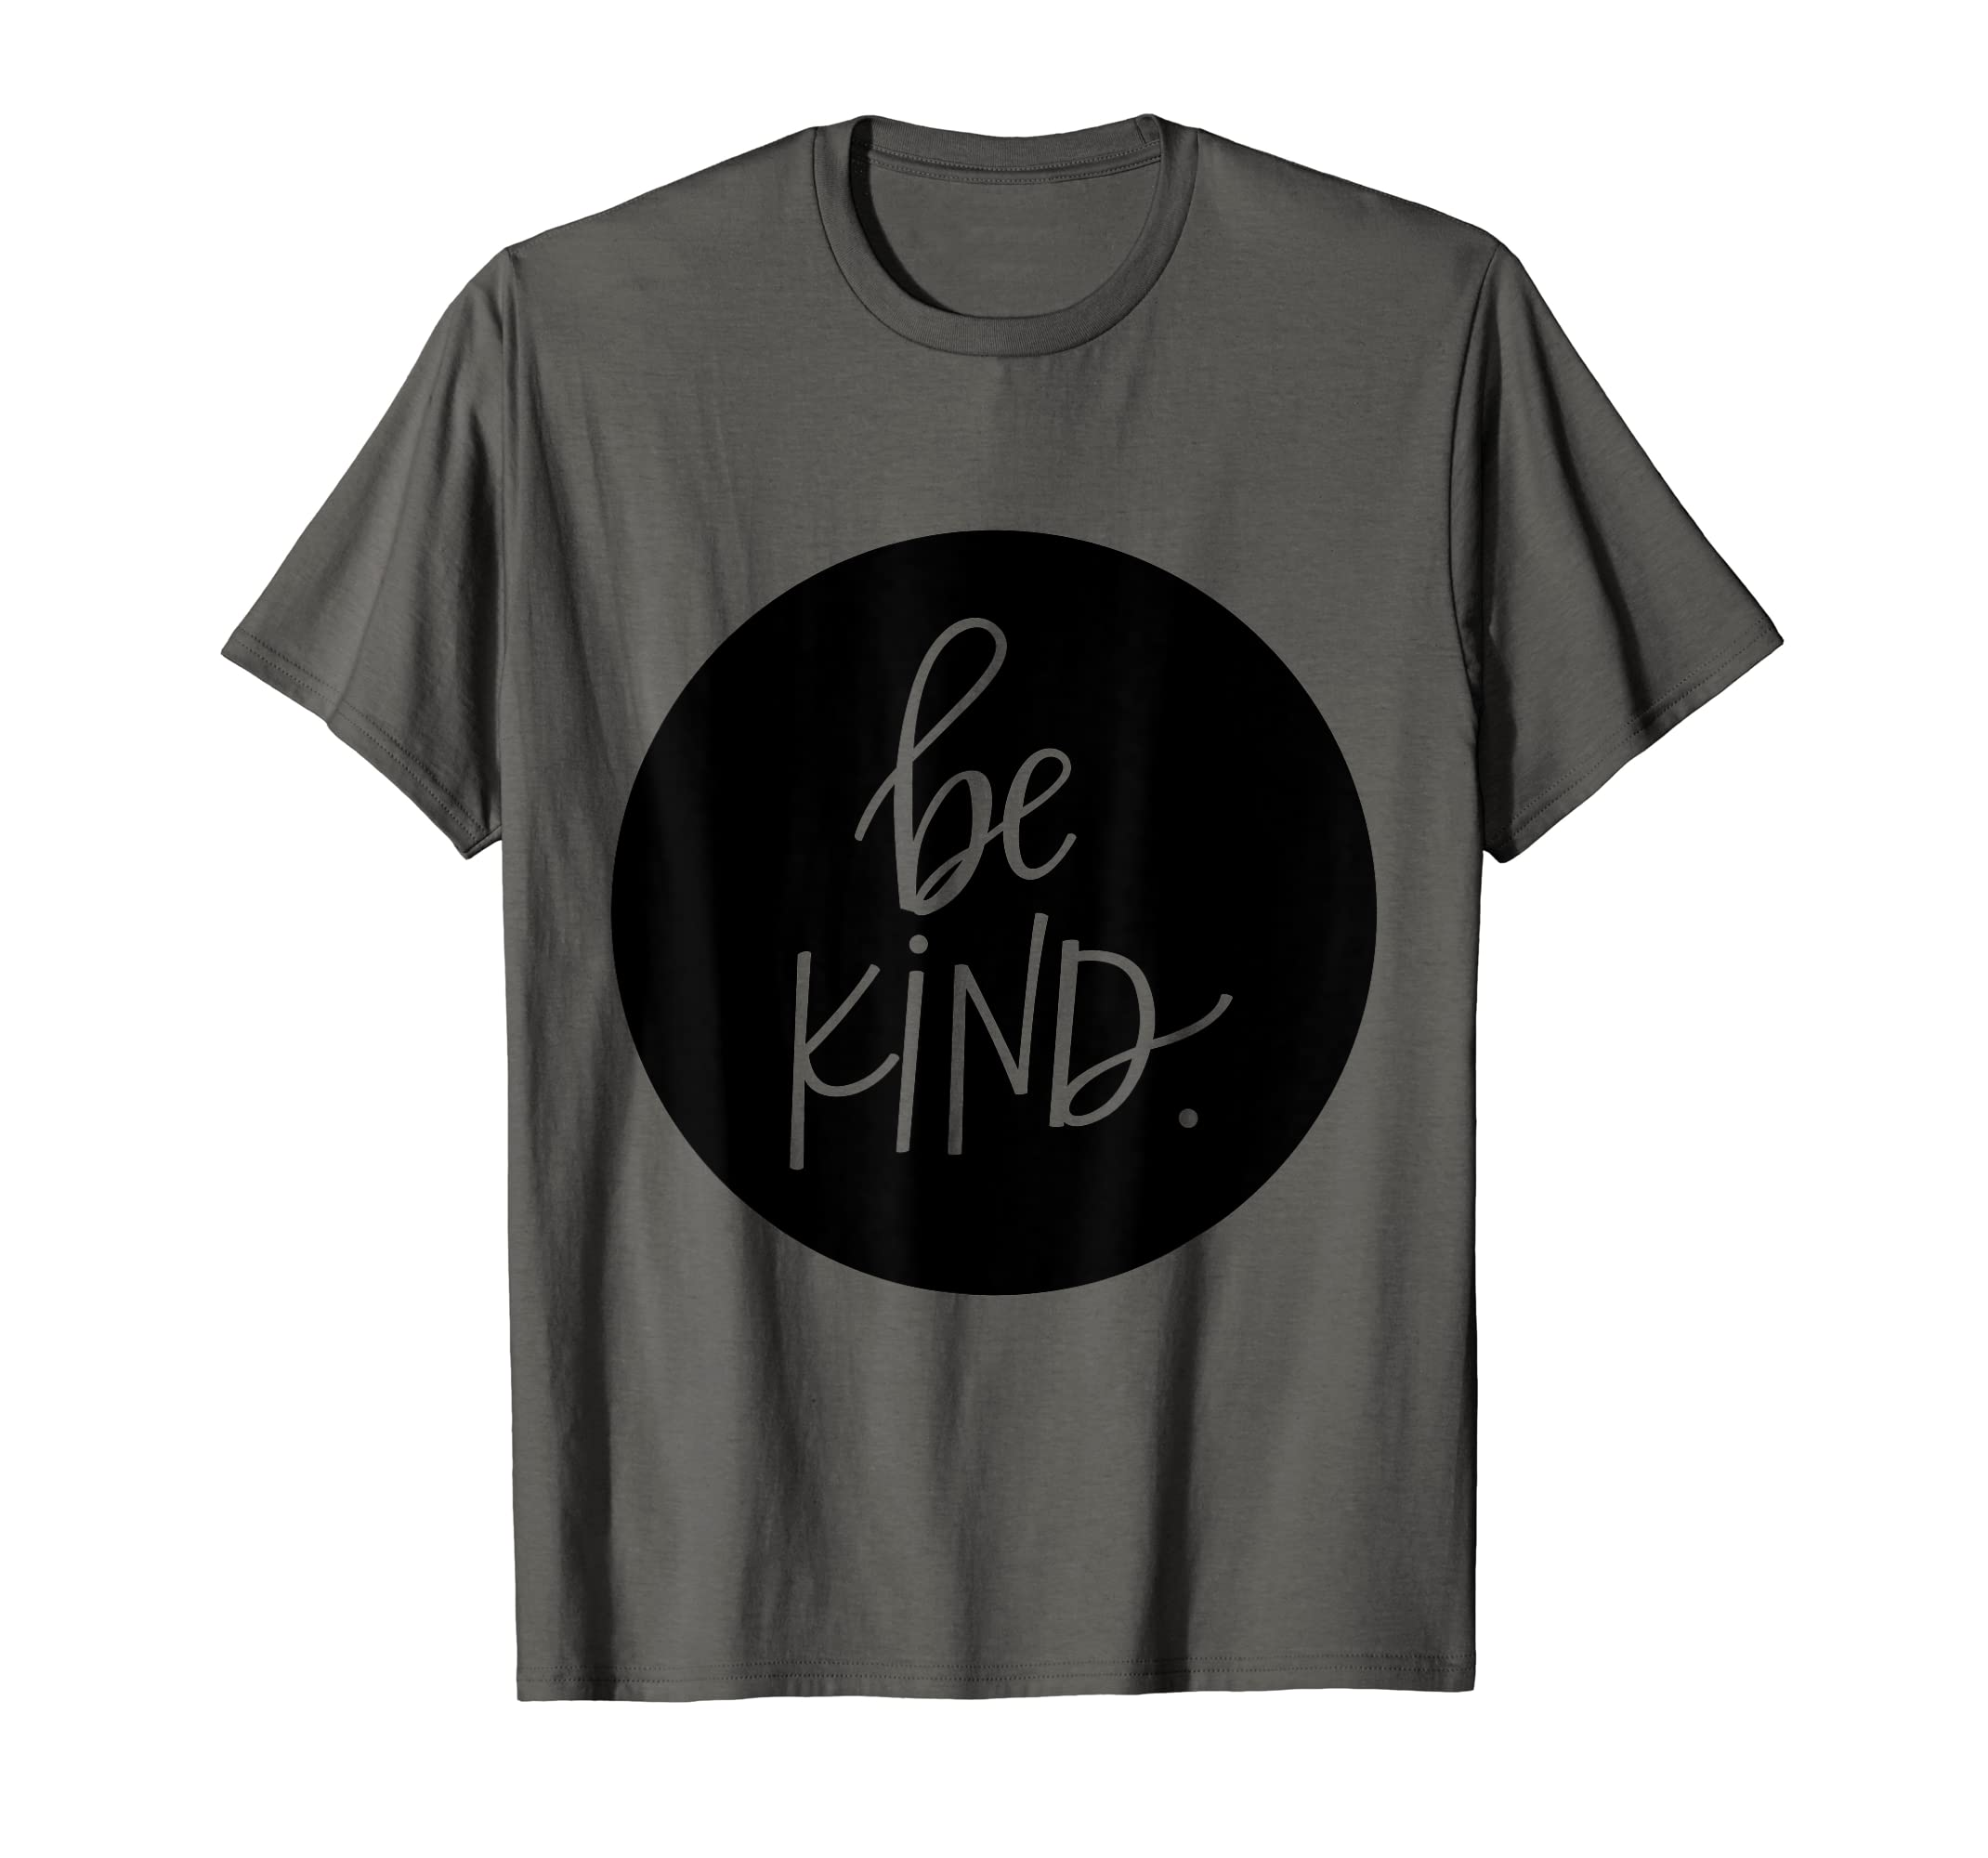 8638ed59 Amazon.com: Positive Acts of Kindness Be KIND T-shirt, inspiring tee:  Clothing